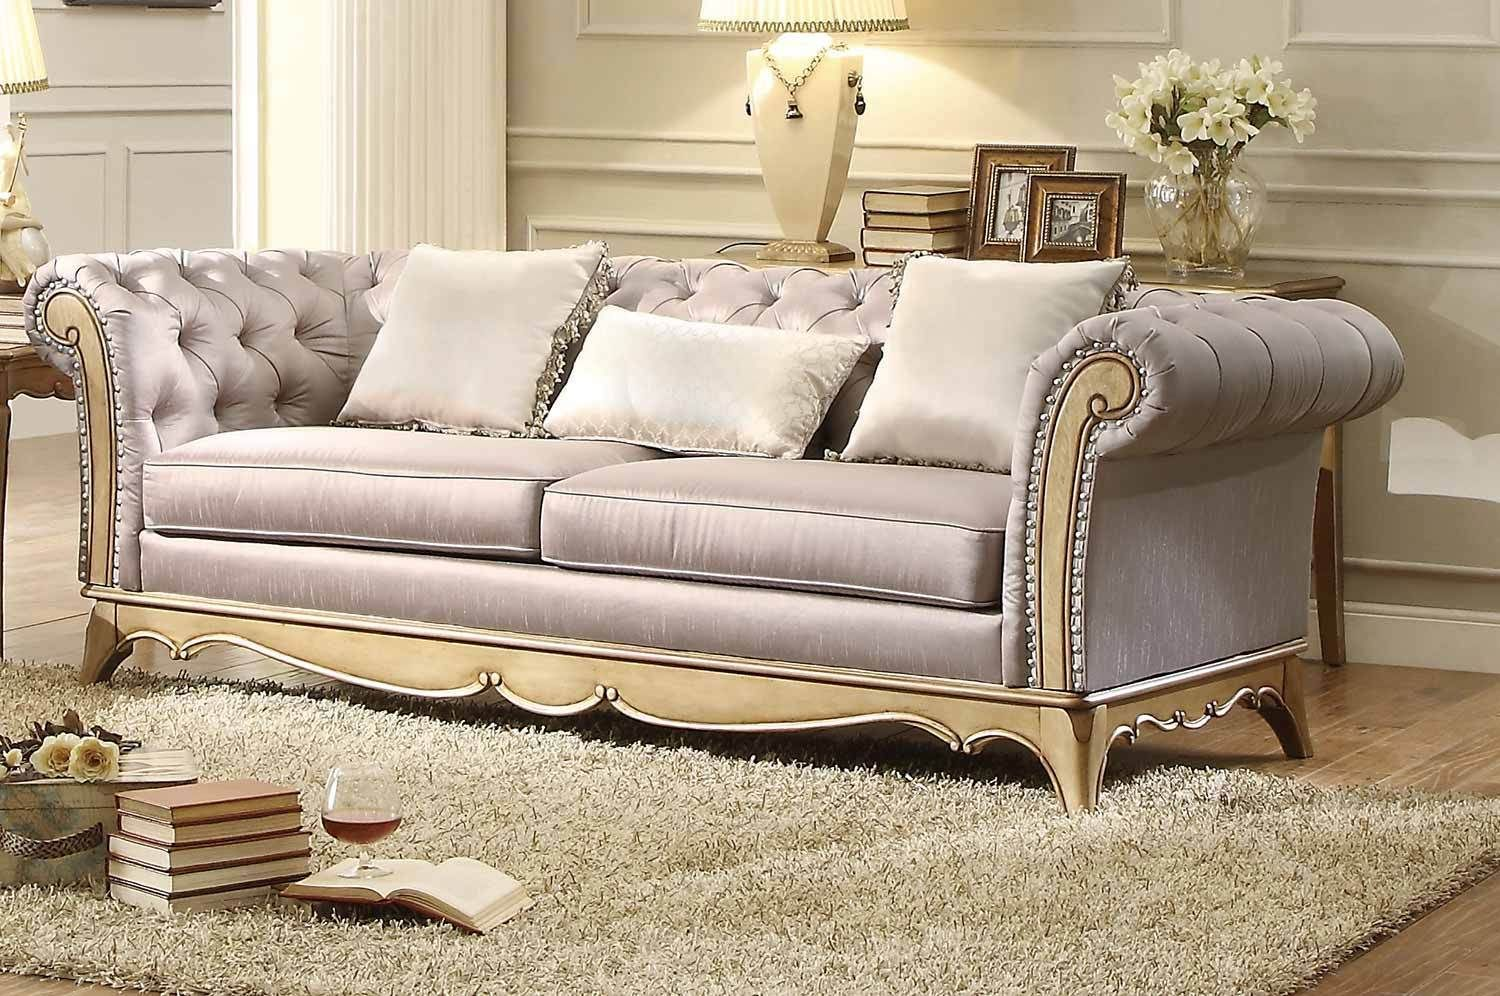 Stunning Faux Silk Upholstered Traditional Tufted Sofa Livingroom Furniture Sale Retro Sofa Gold Sofa Sofa Set Price